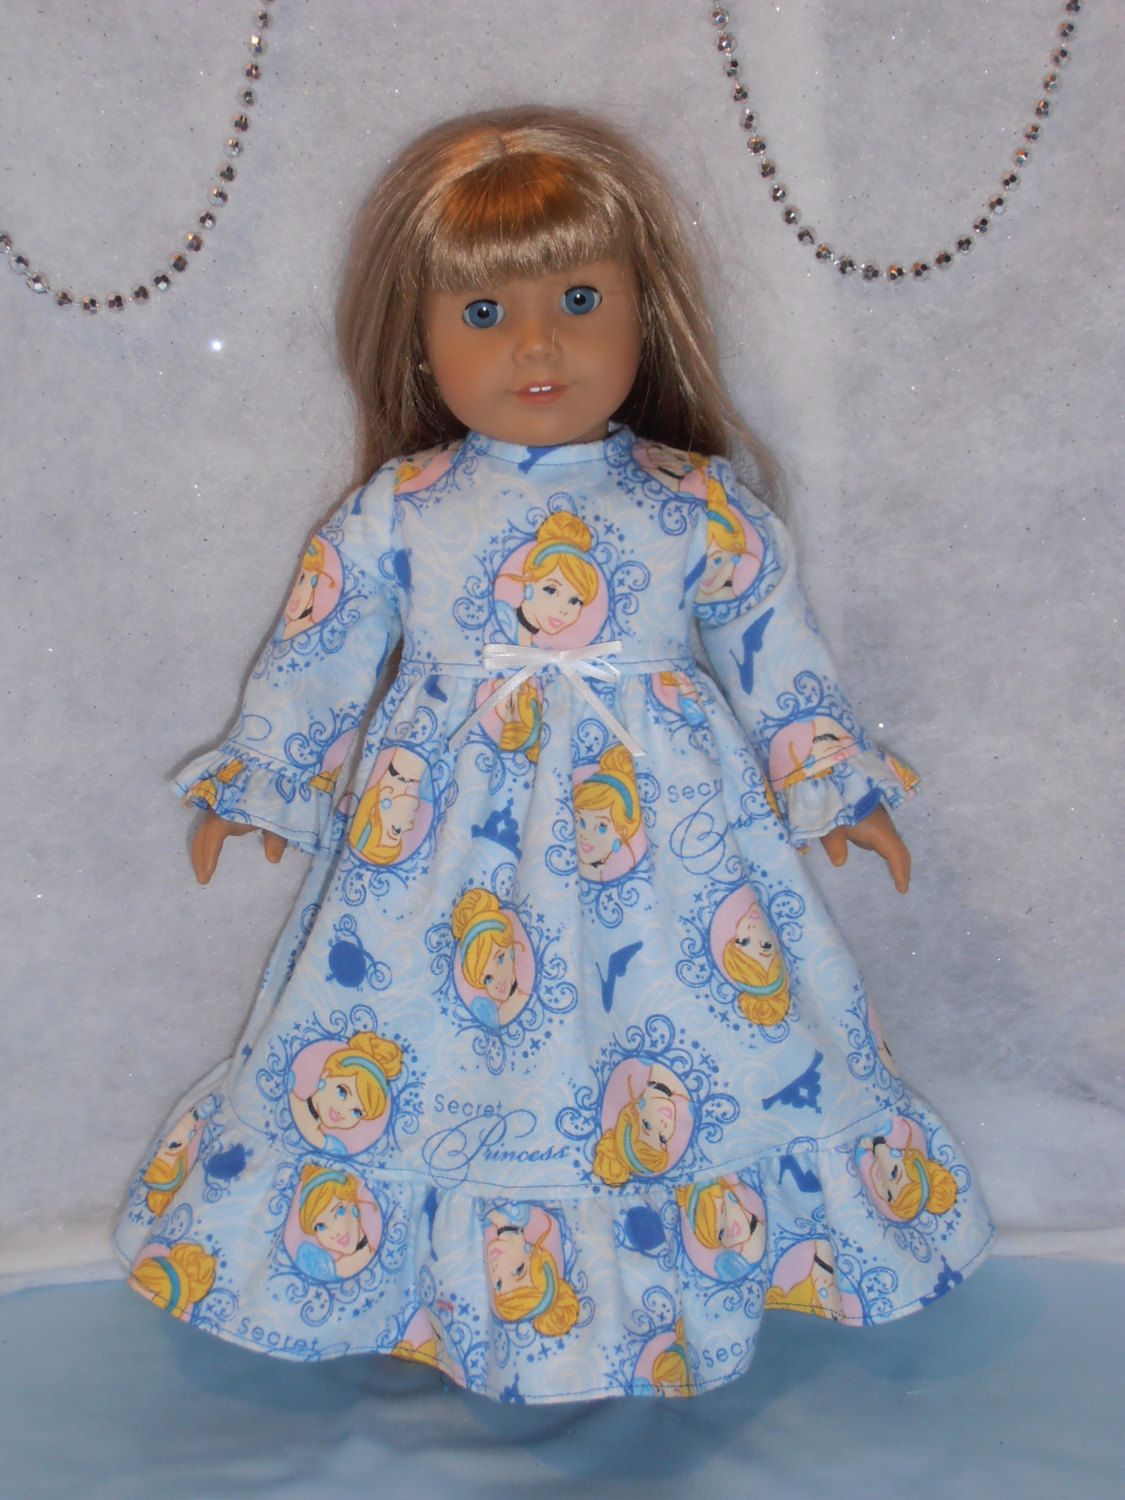 Red flannel nightgown  Princess Flannel Nightgown   inch Doll  Free Shipping by